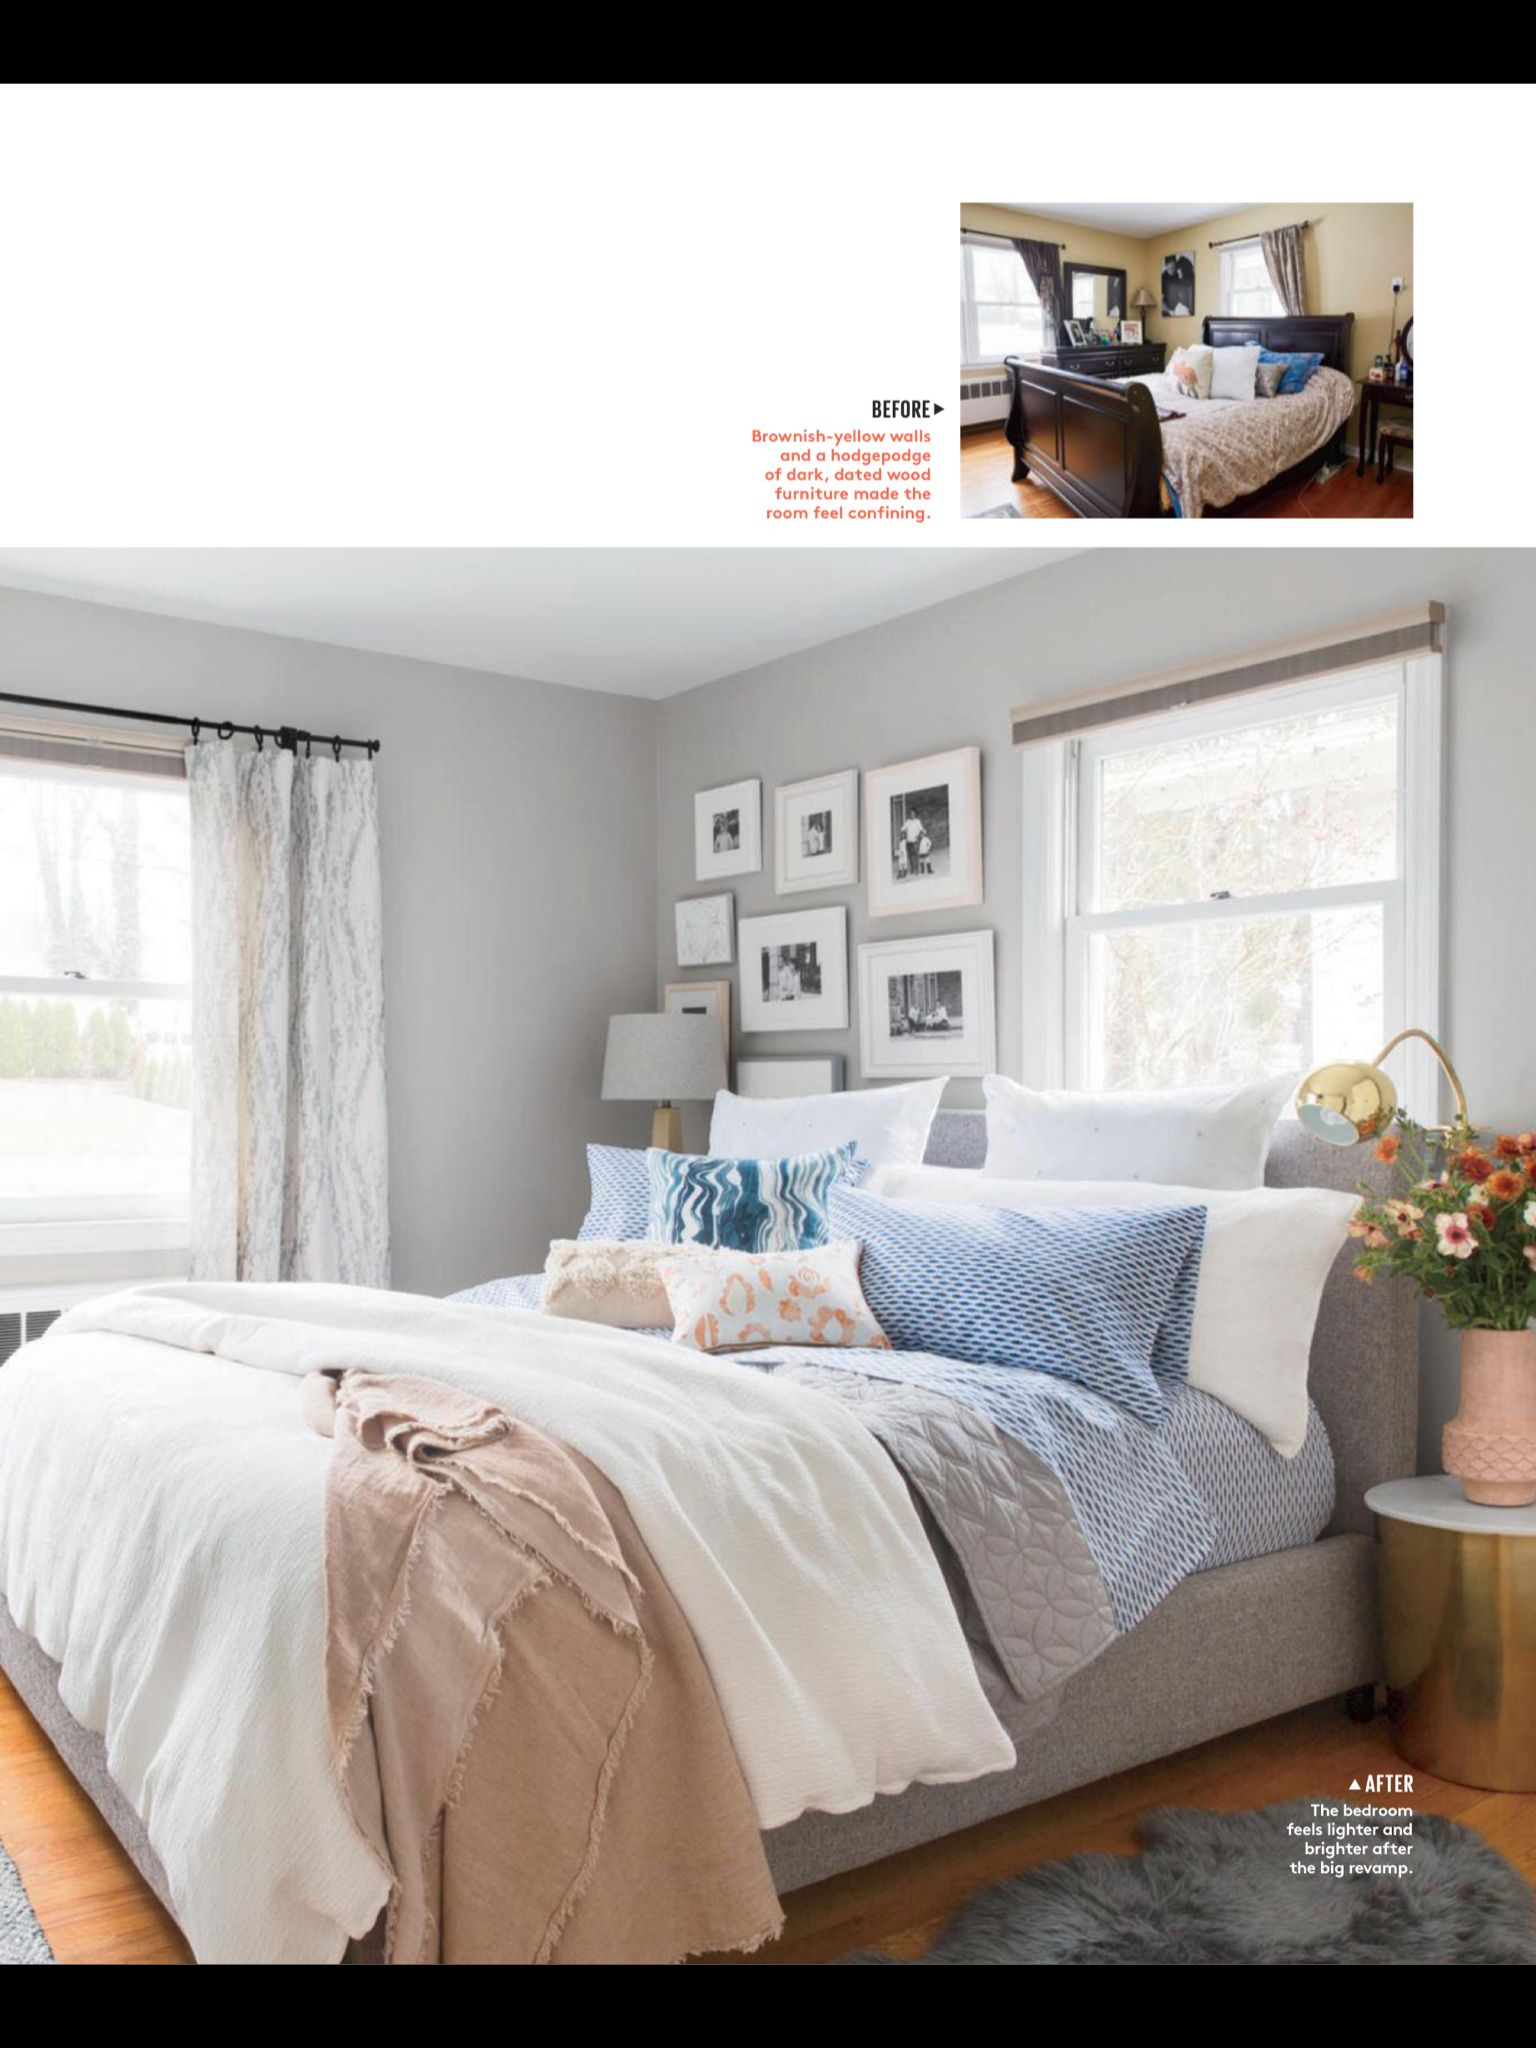 "App To Design Your Room: ""Inside The Dreamiest Room Refresh"" From Real Simple, May"